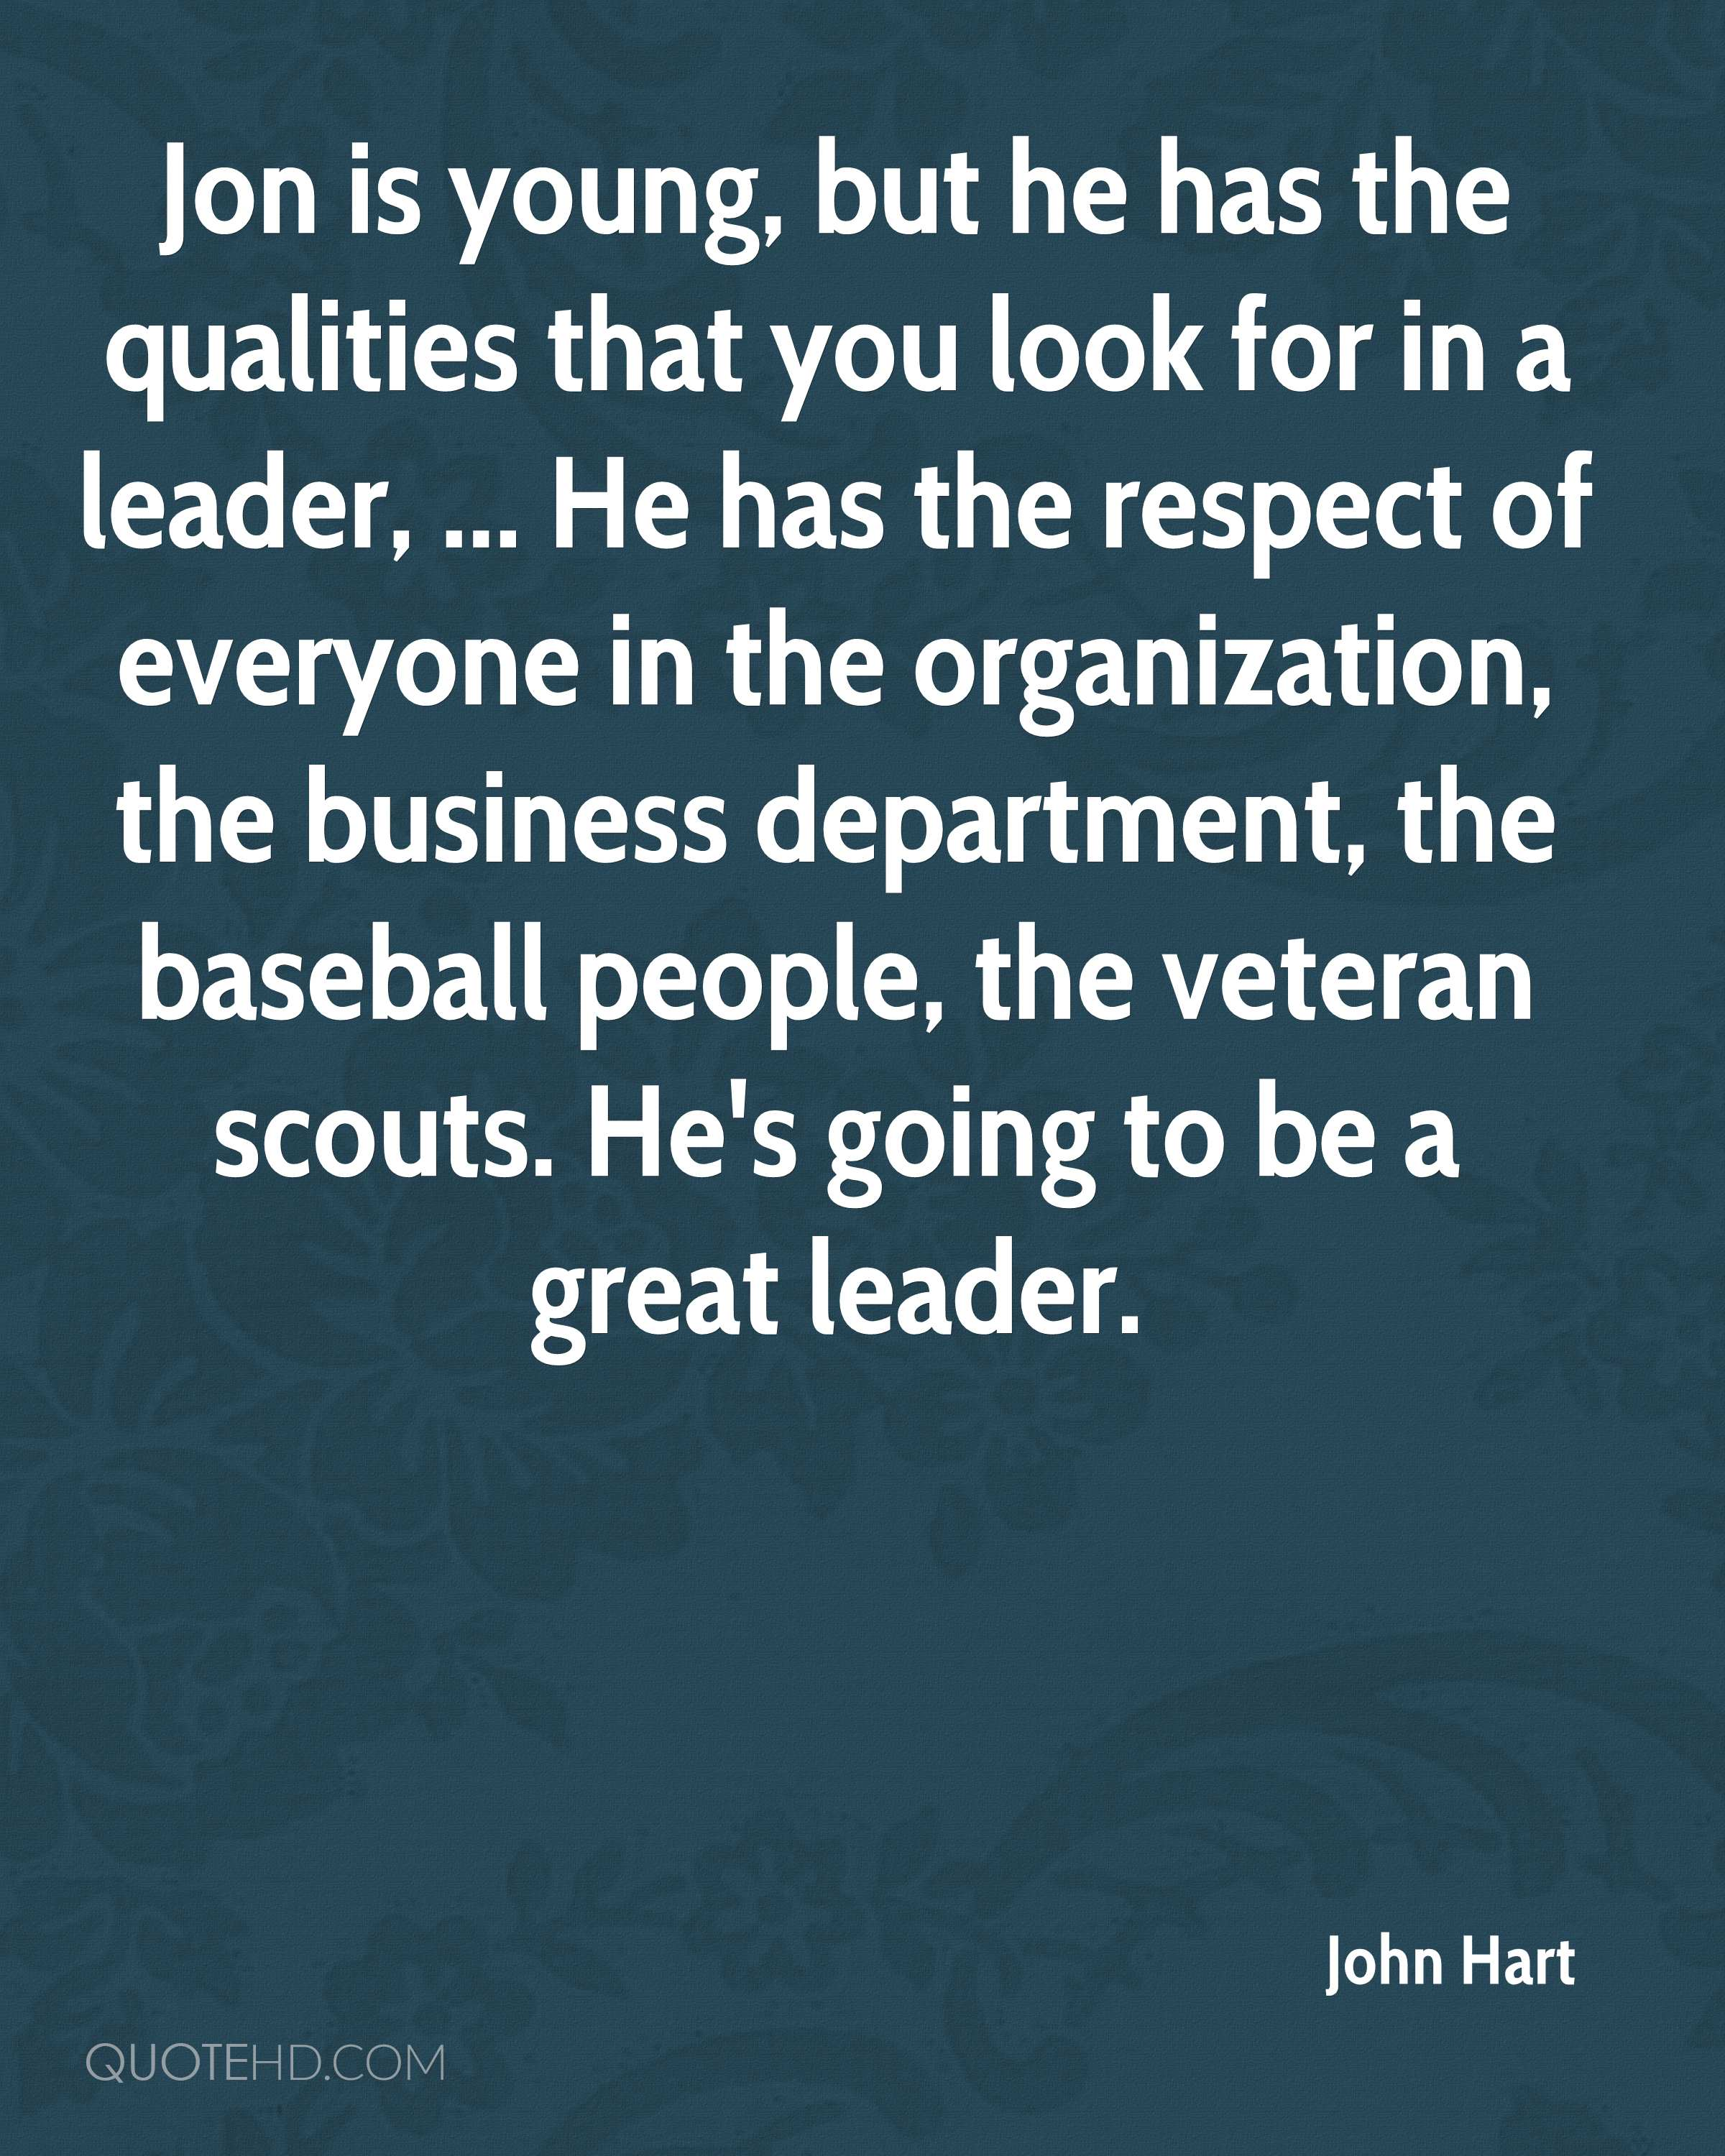 Jon is young, but he has the qualities that you look for in a leader, ... He has the respect of everyone in the organization, the business department, the baseball people, the veteran scouts. He's going to be a great leader.